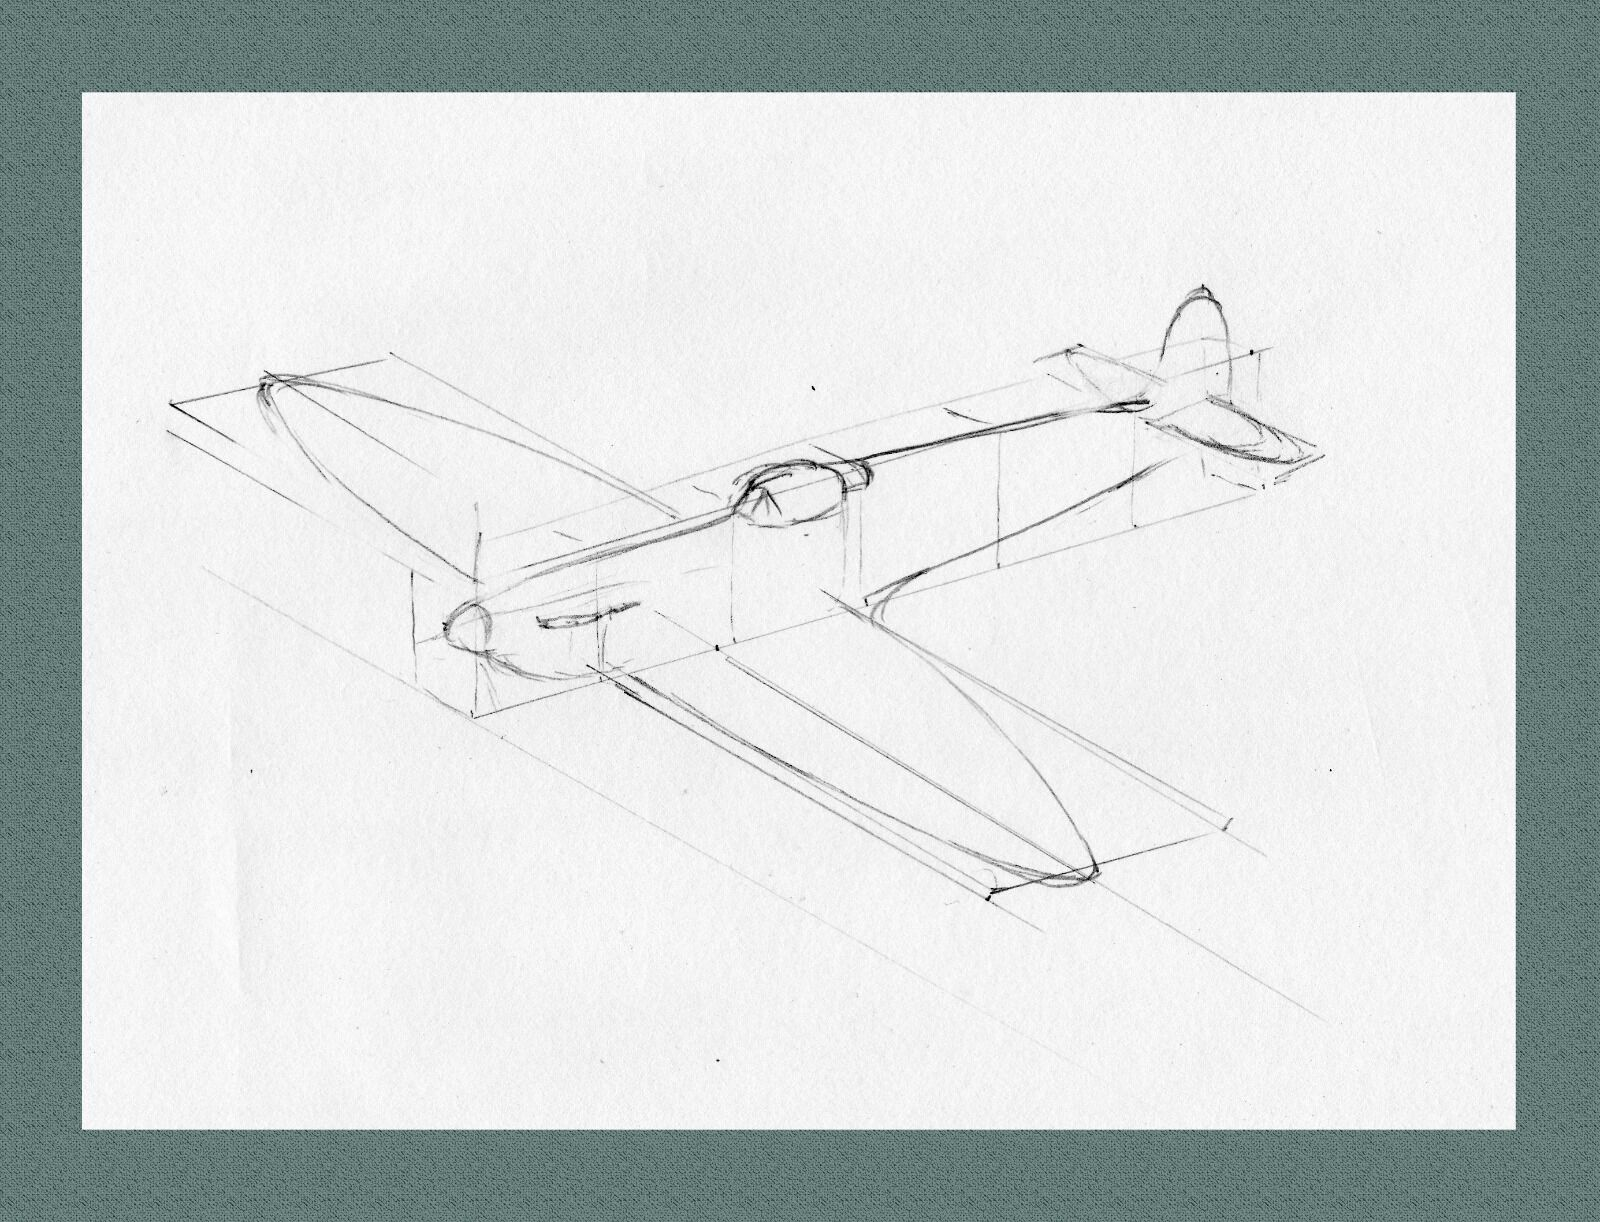 My simple way of constructing an aircraft (here a Spitfire) using boxes to set out the overall layout.